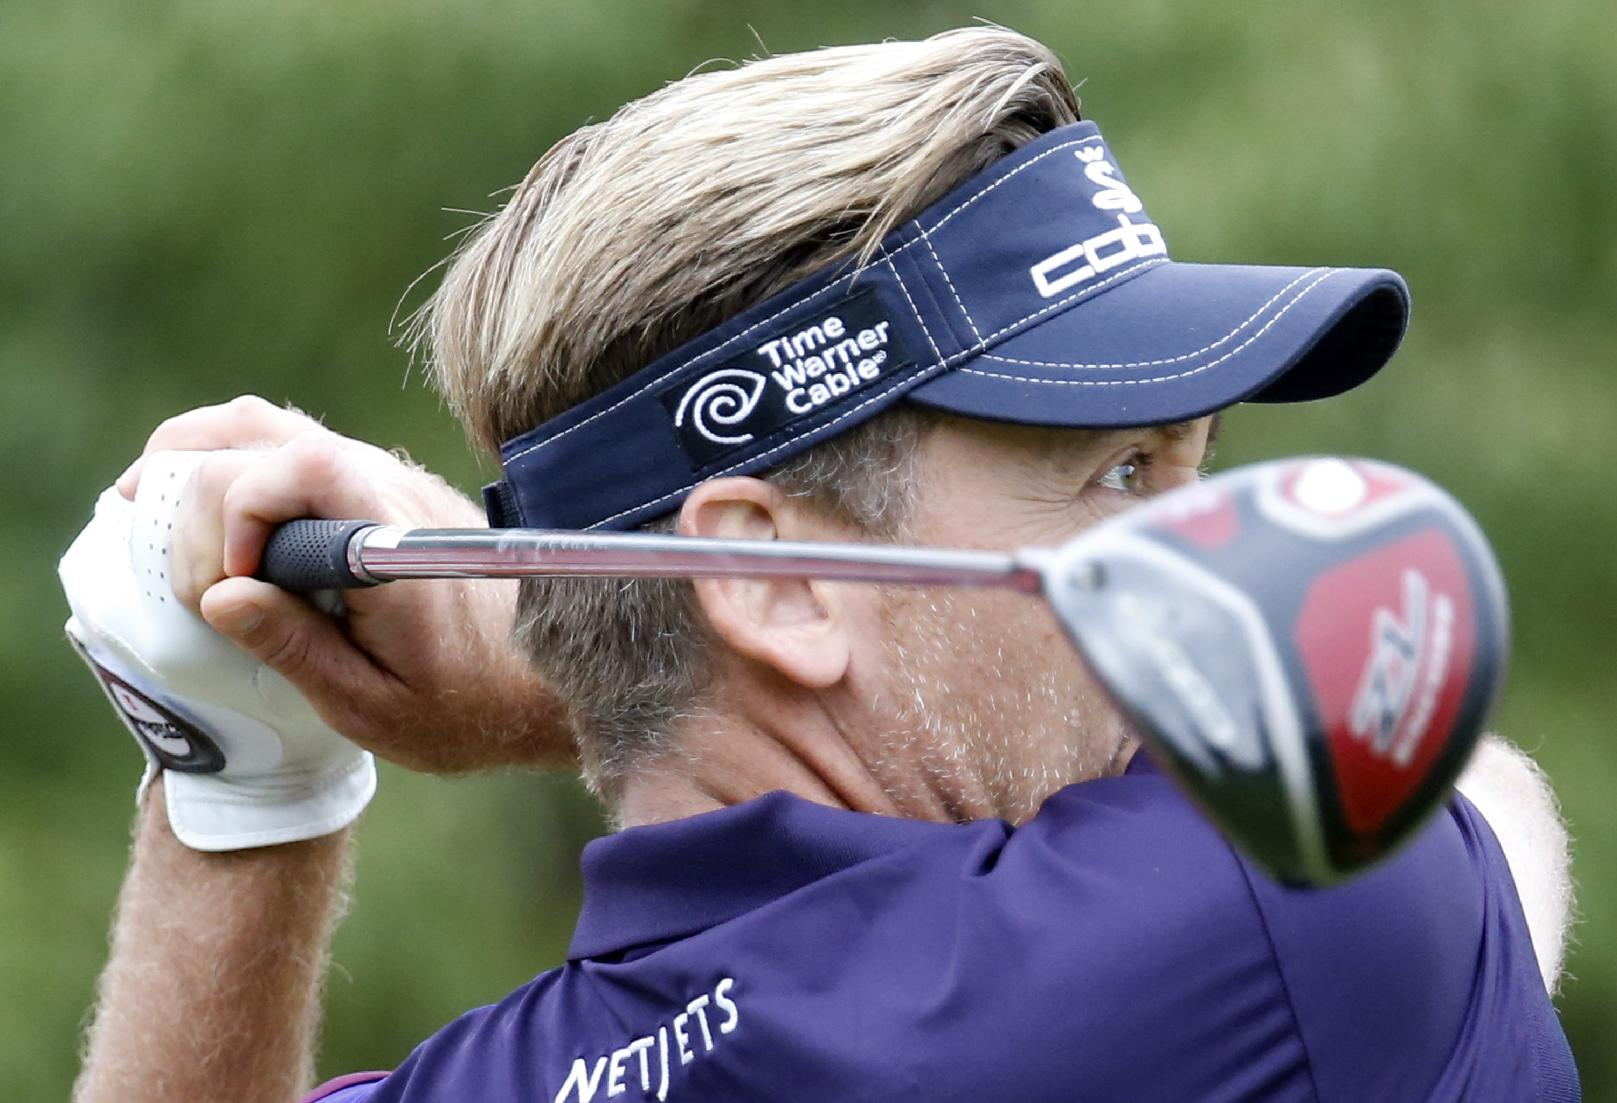 Defending champion Ian Poulter of England tees off on the 2nd hole during the first round of the HSBC Champions golf tournament at the Sheshan International Golf Club in Shanghai, China, Thursday, Oct. 31, 2013